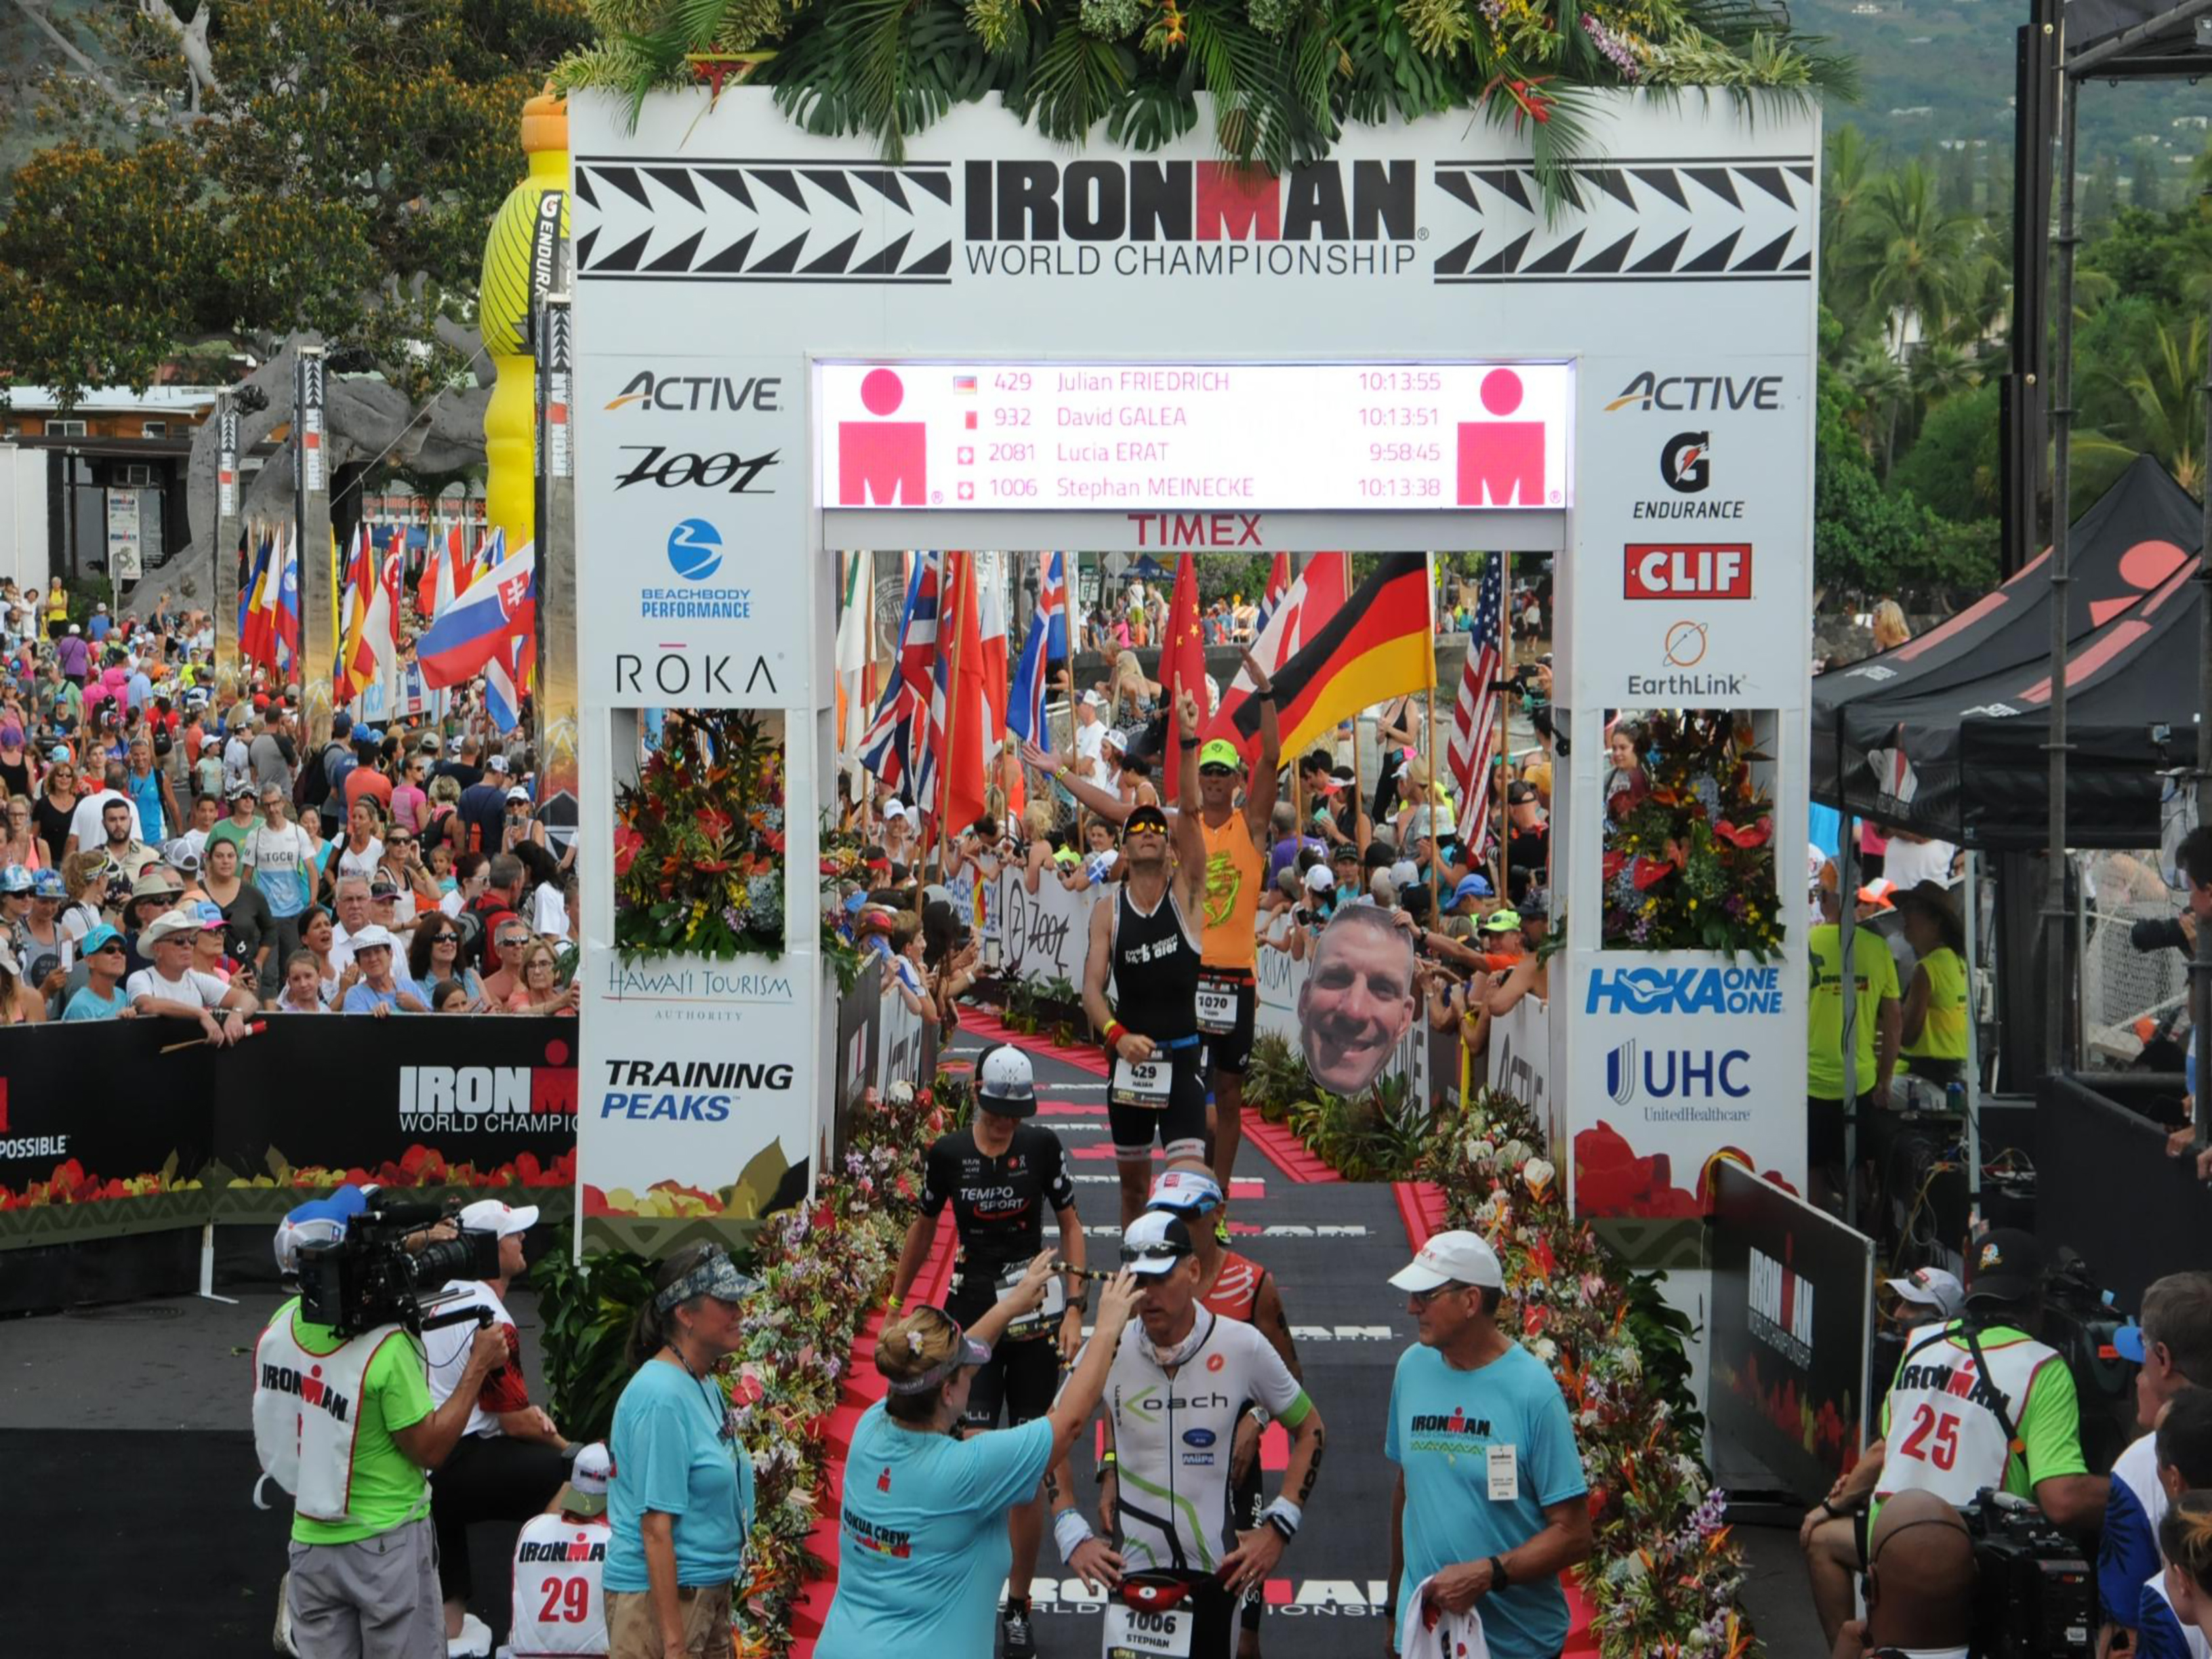 Ironman World Championship 2016